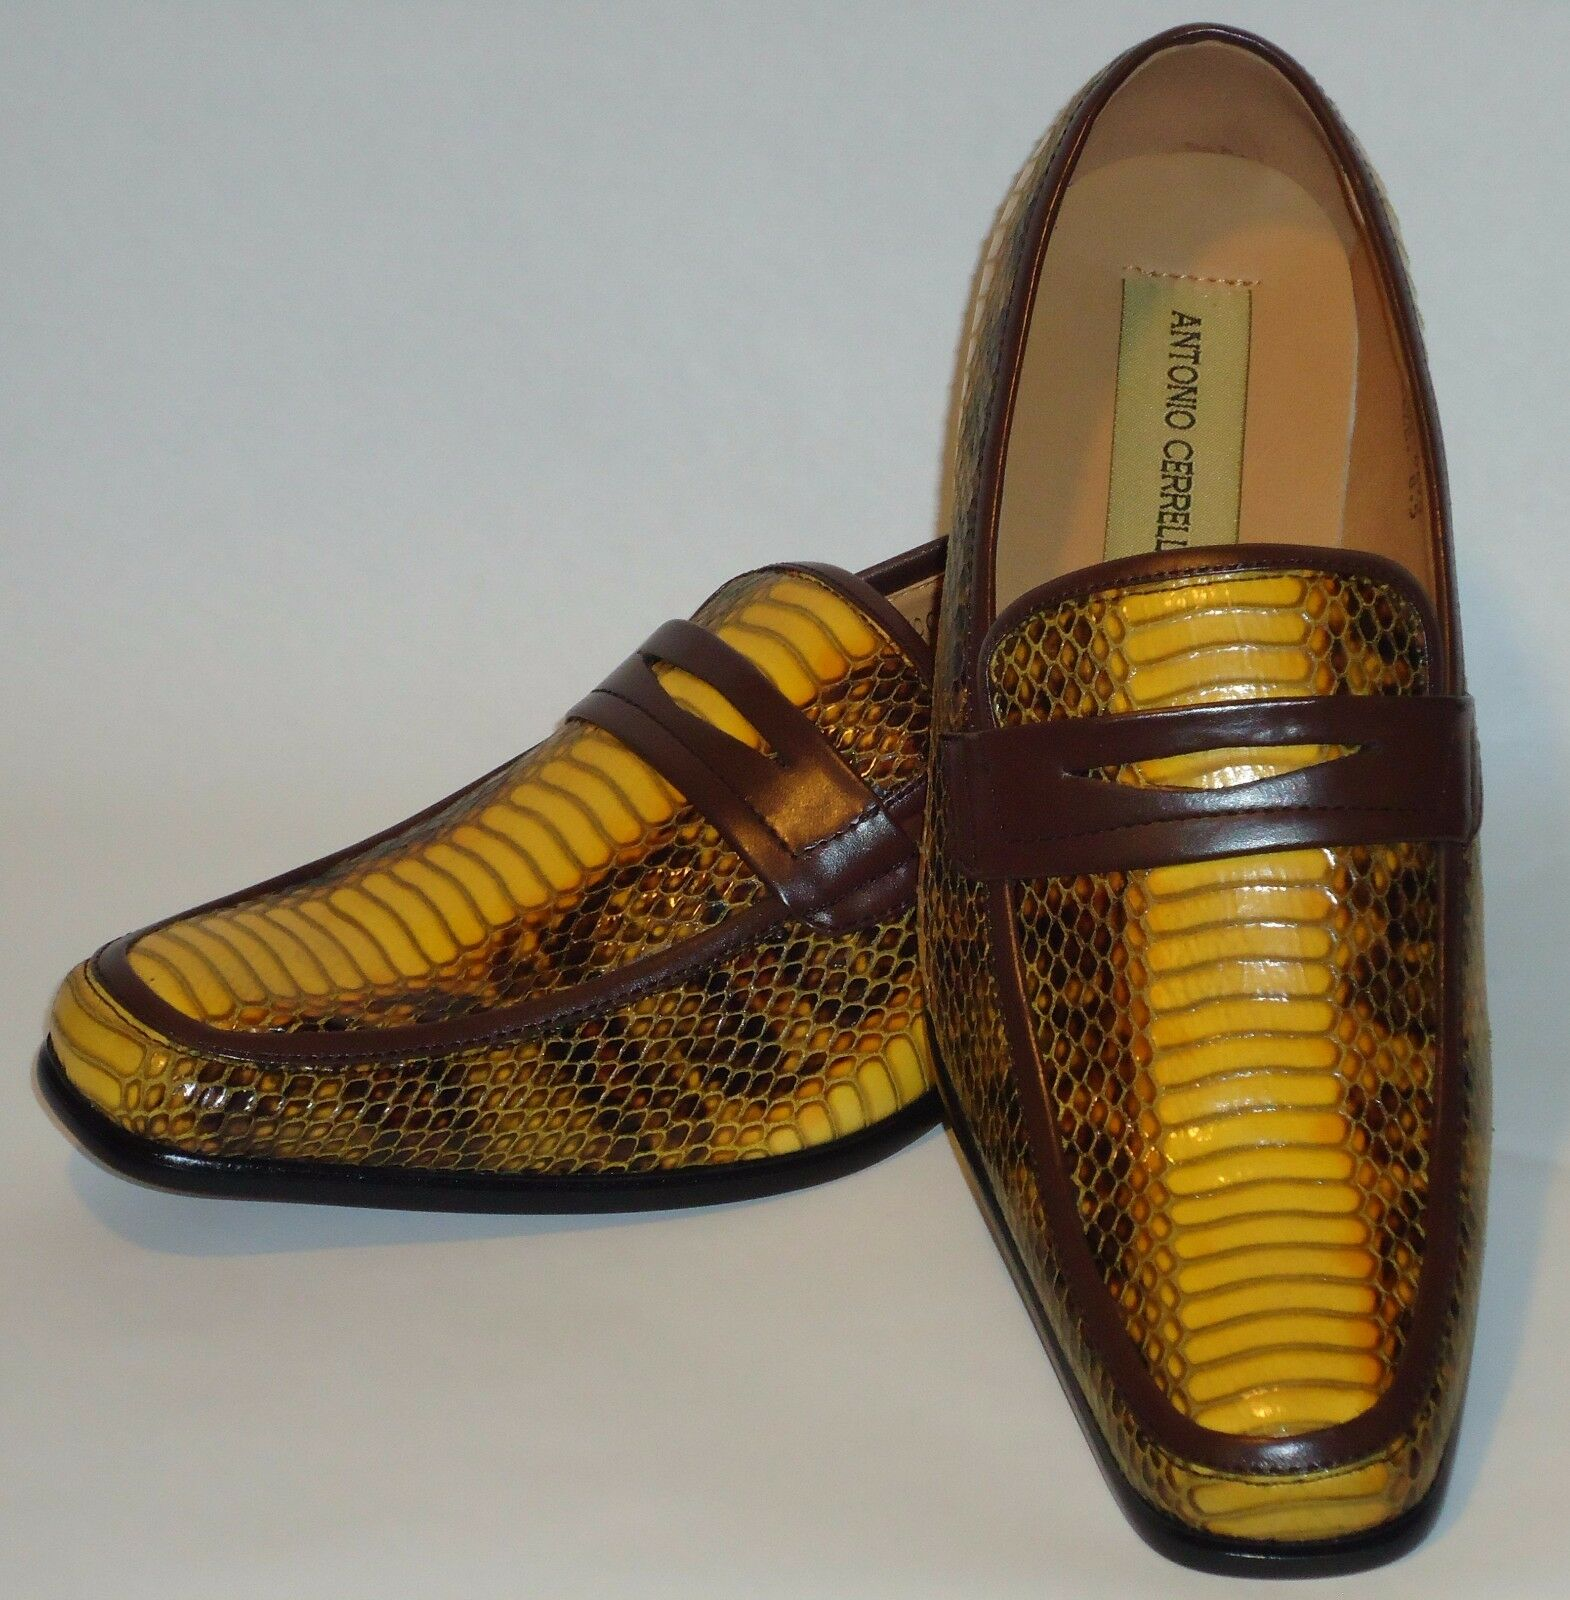 Loafers Uomo Golden Yellow & Braun Snake Look Dress Loafers  Schuhes Antonio Cerrelli 6494 ef814a